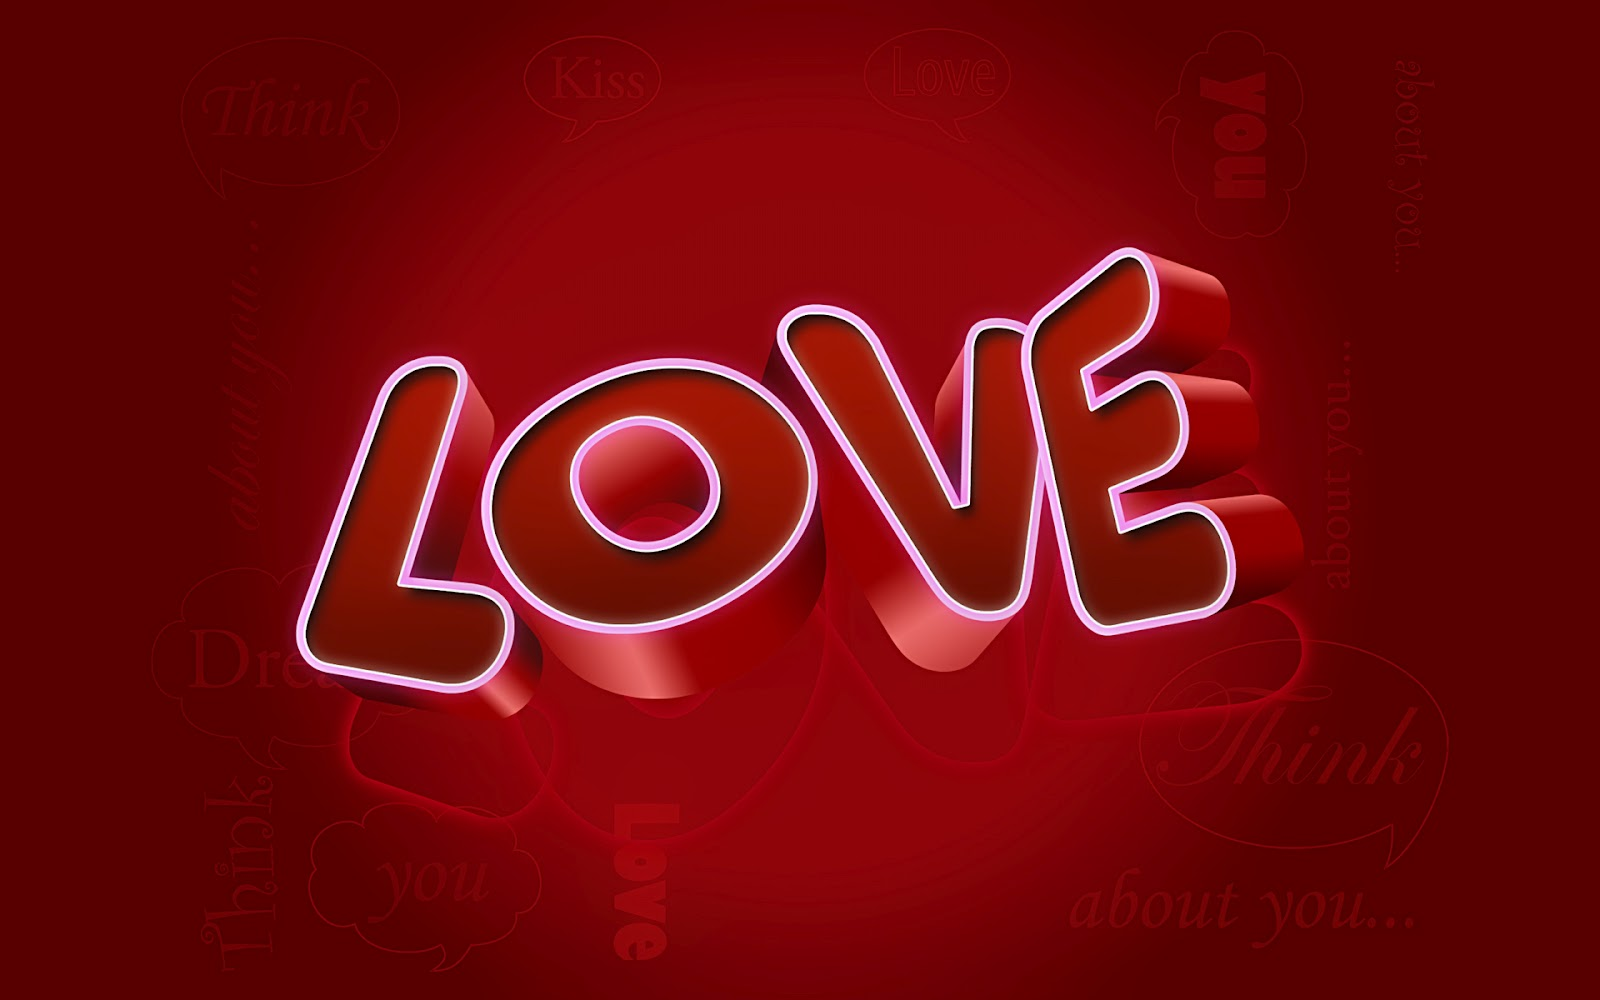 Love Wallpaper New : New Latest i love you wallpapers on this valentines day 2016